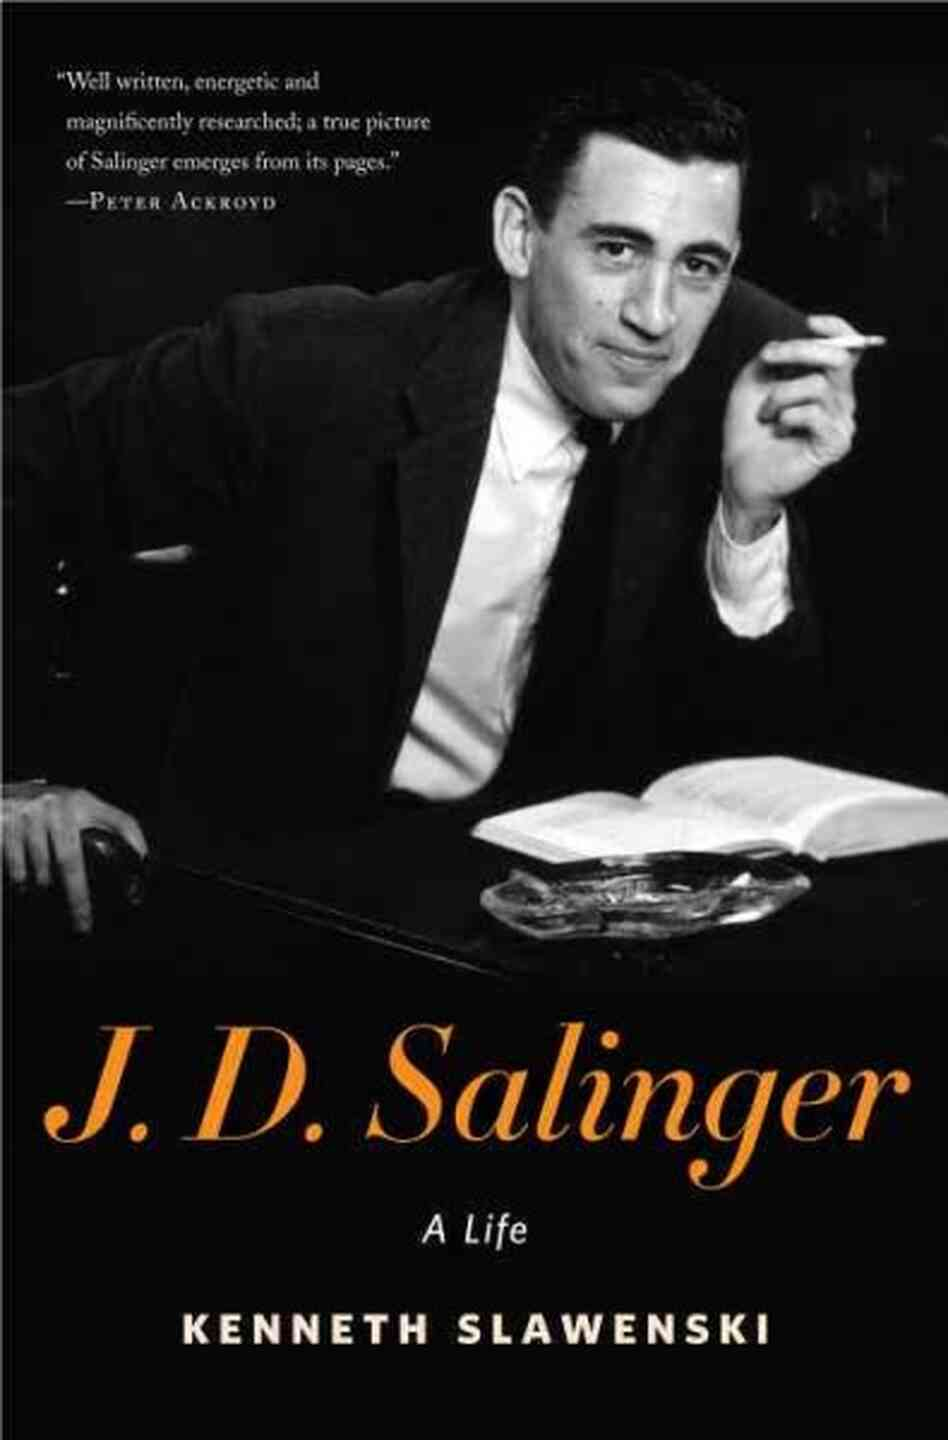 the life and philosophy of j d salinger Dead caulfields was established in 2004 as an online resource focused on the life and works of jd salinger melded perfectly with salinger's writing philosophy.